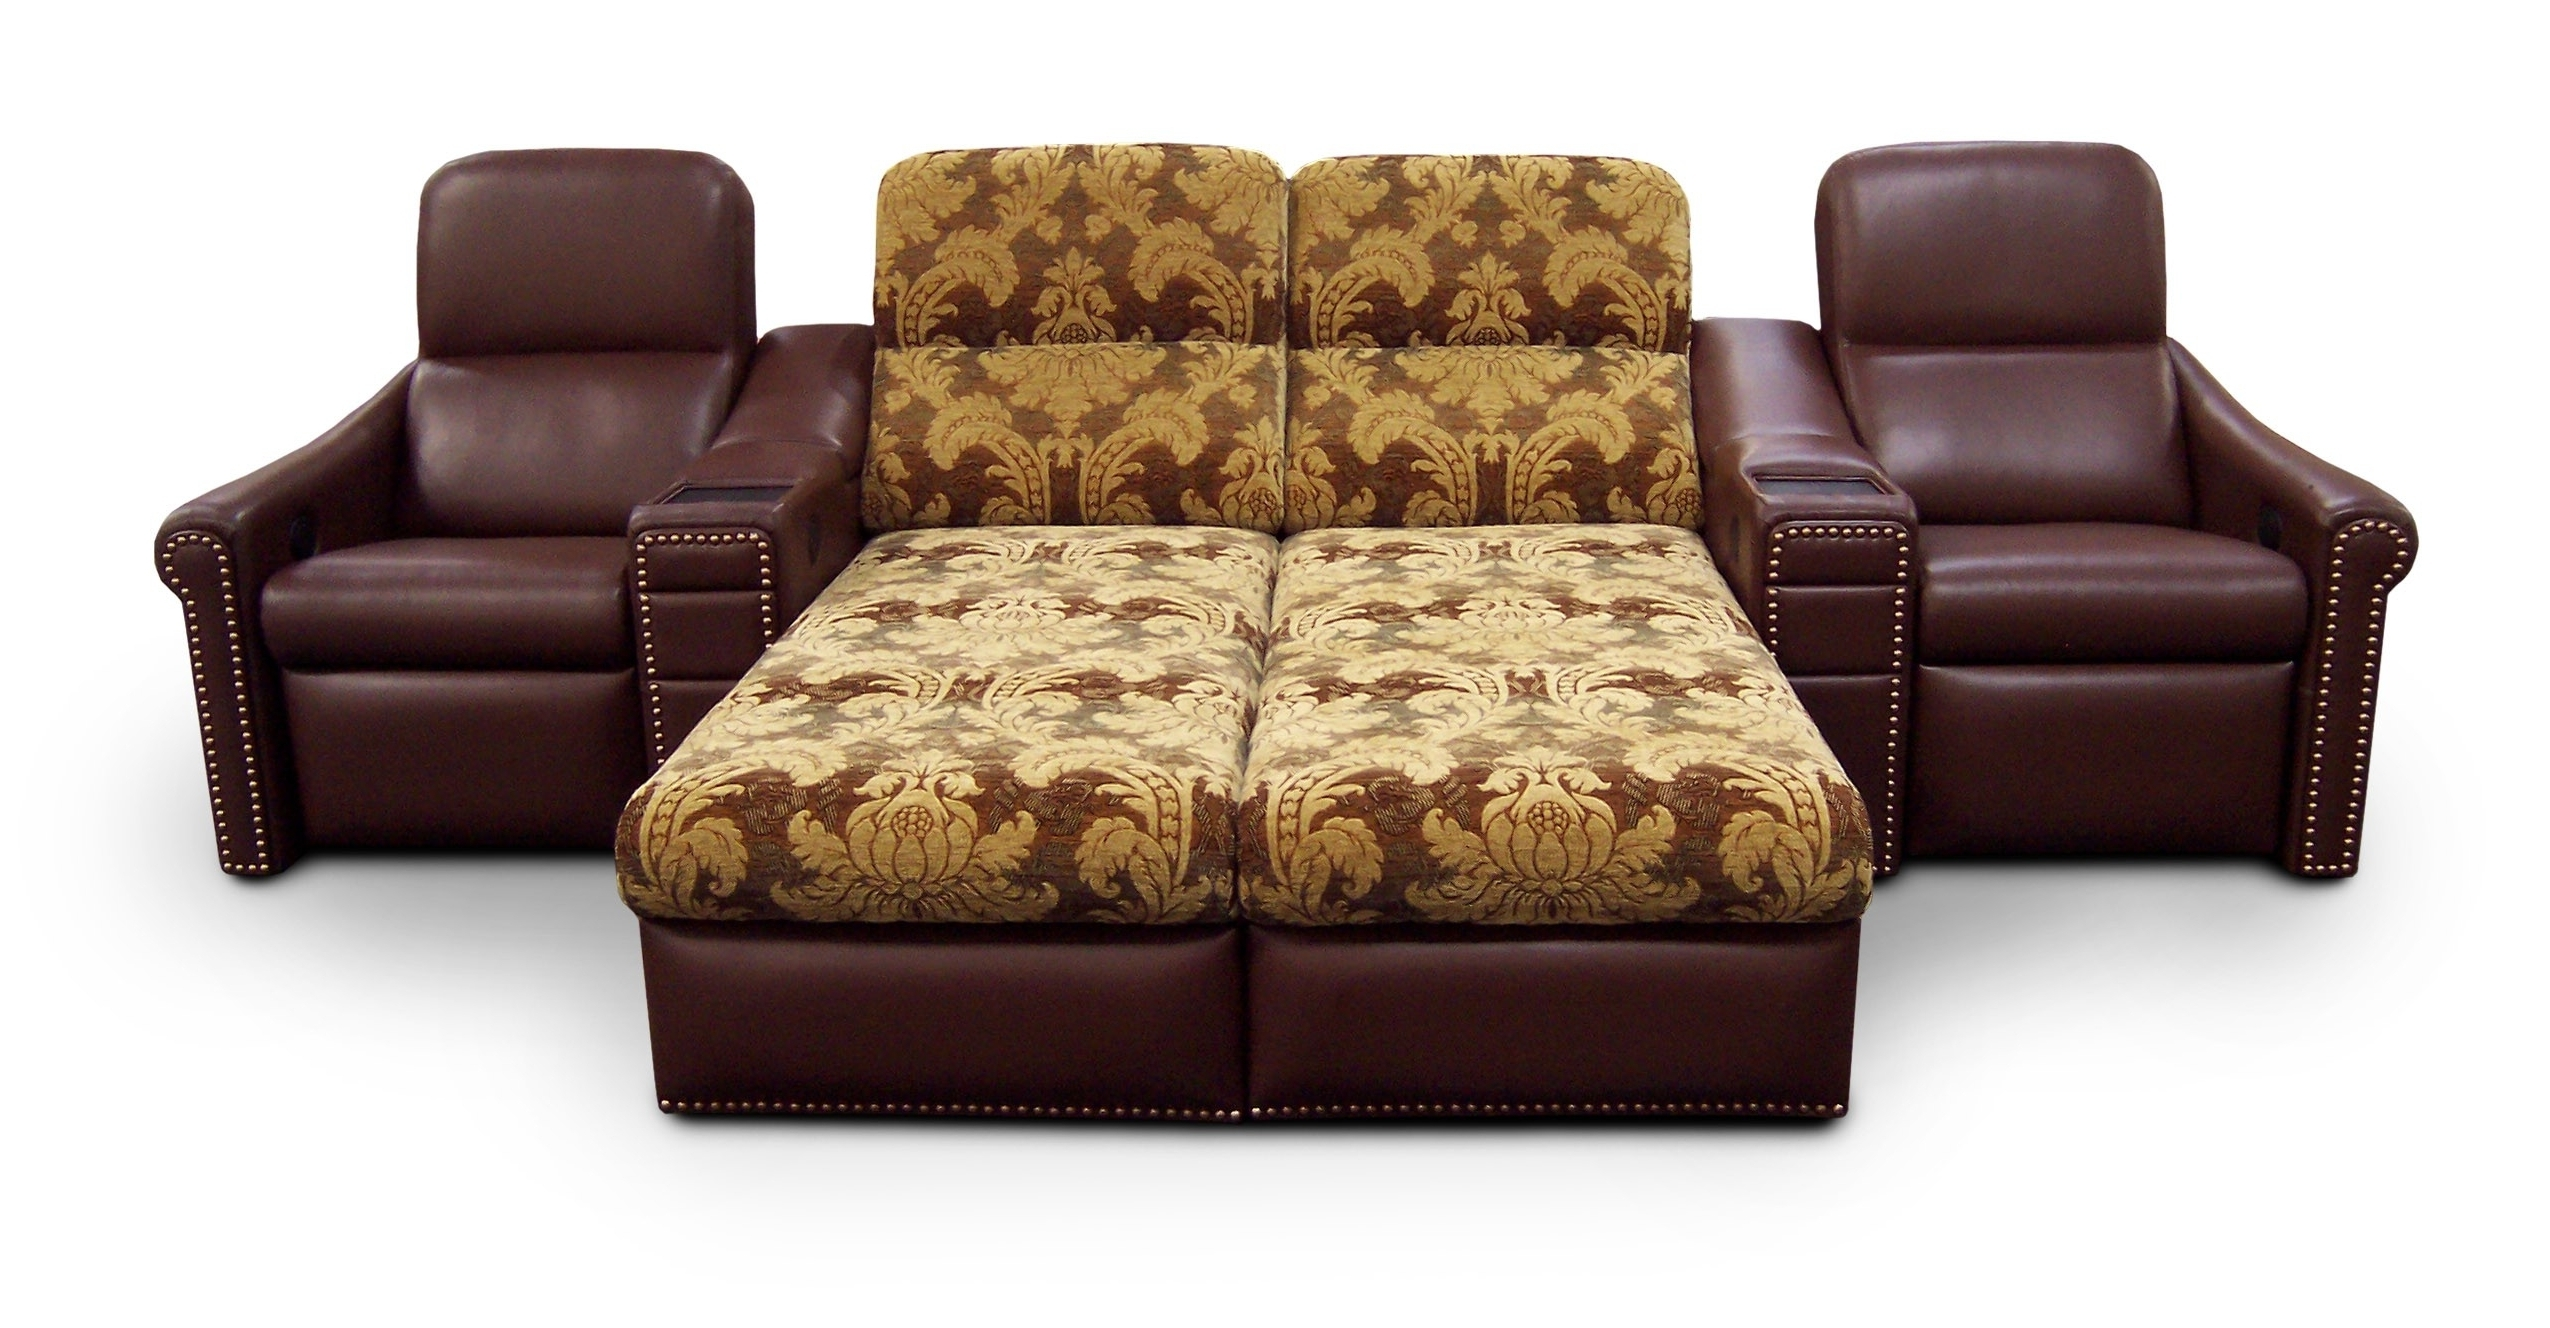 Most Current Double Chaise Lounge Sofa Decorators Systems – Surripui With Double Chaise Lounges For Living Room (View 4 of 15)